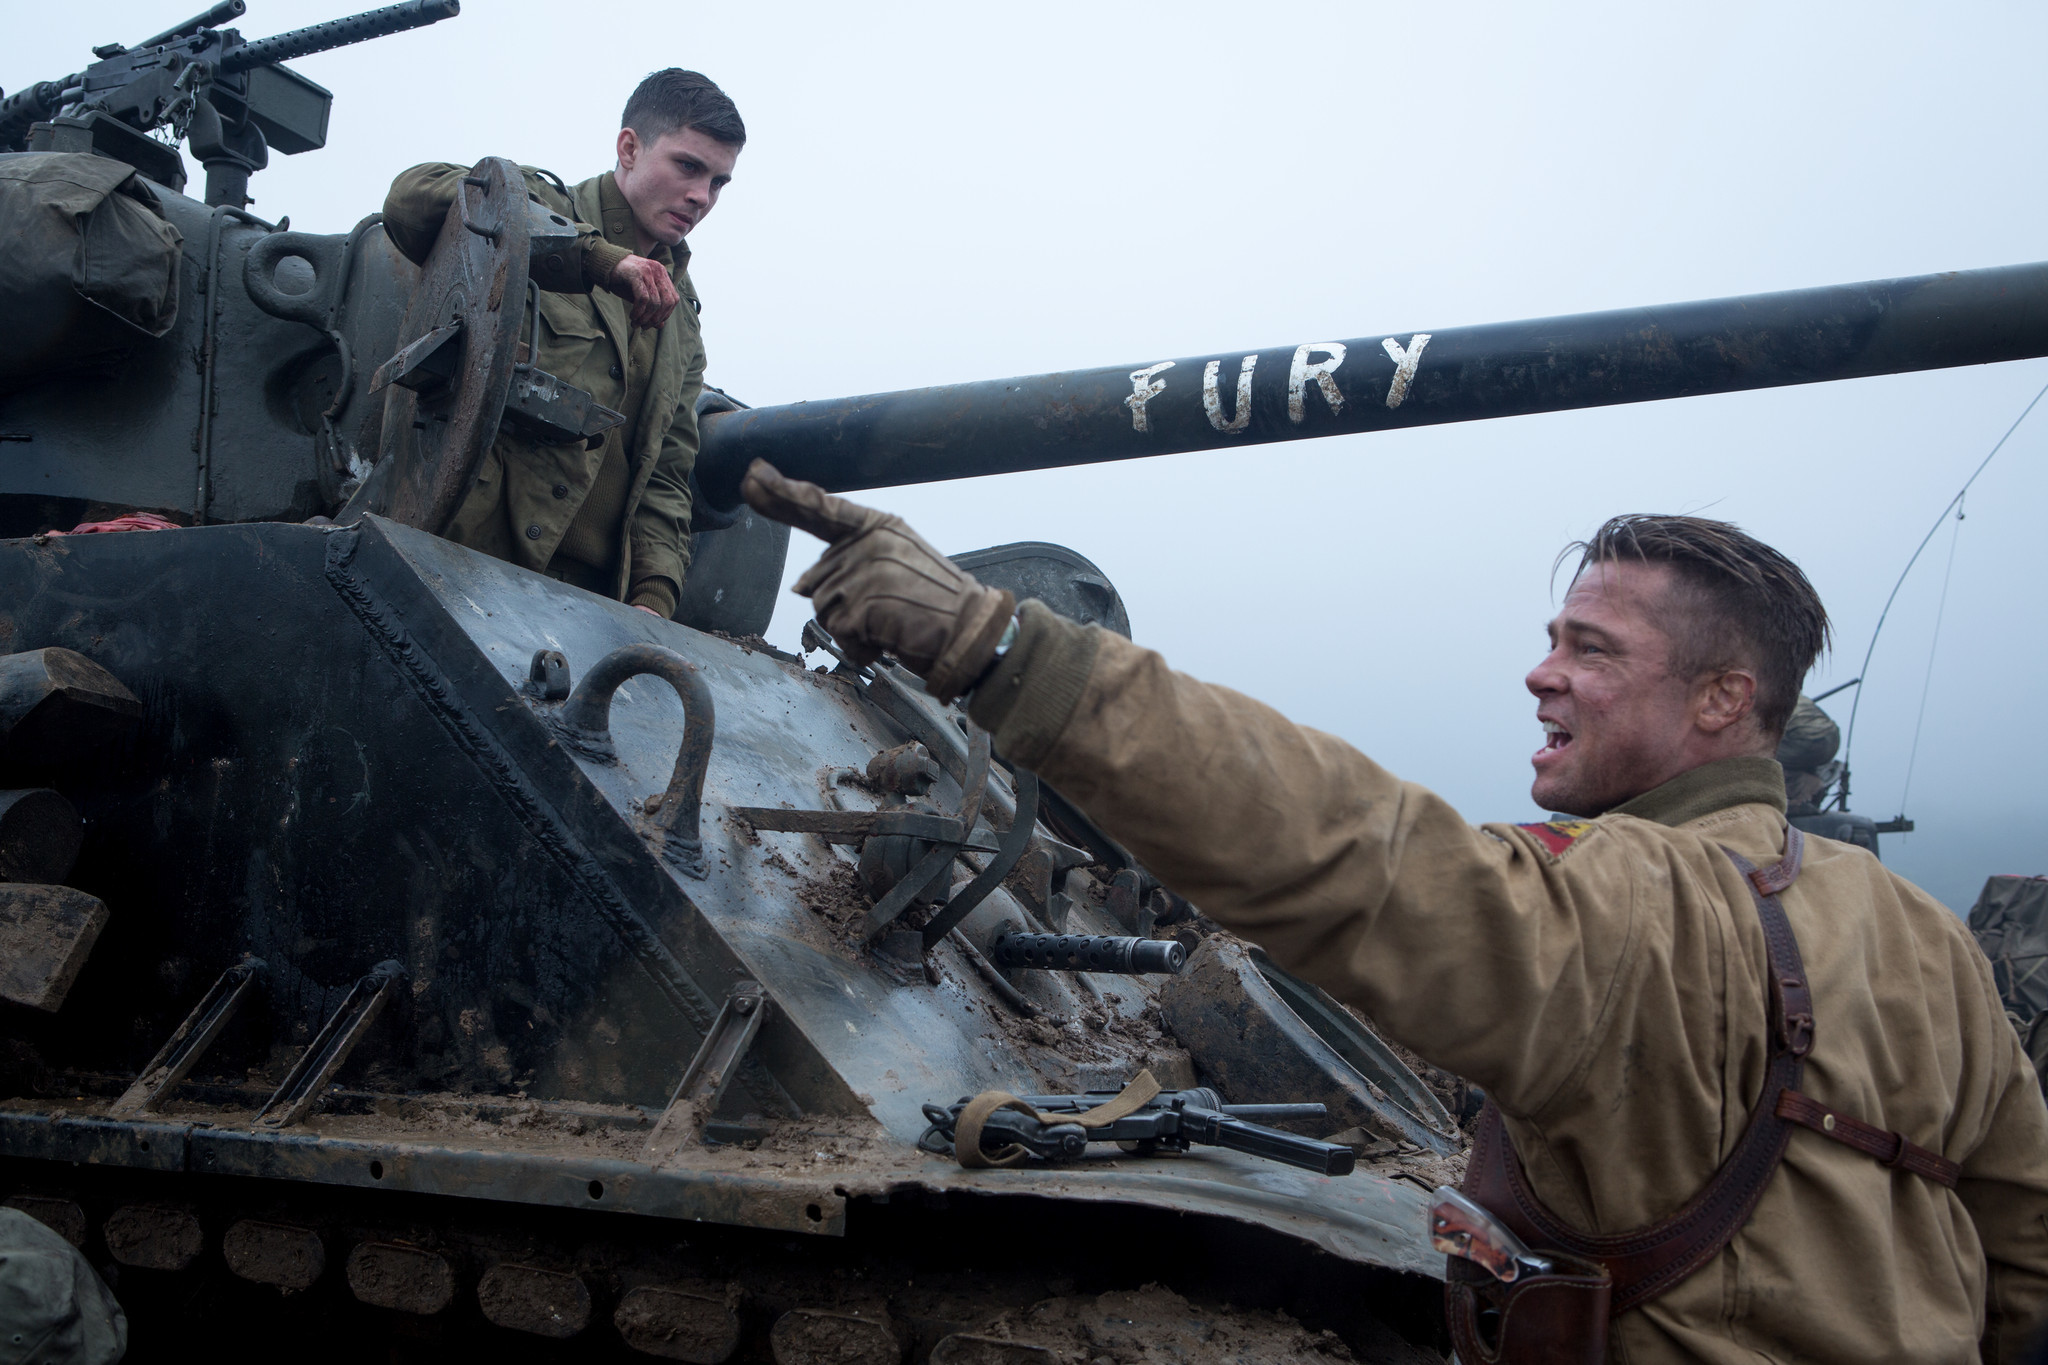 Fury Brad Pitt Tank Drama Carries Out Its Mission Reviews Say - New official trailer fury starring brad pitt